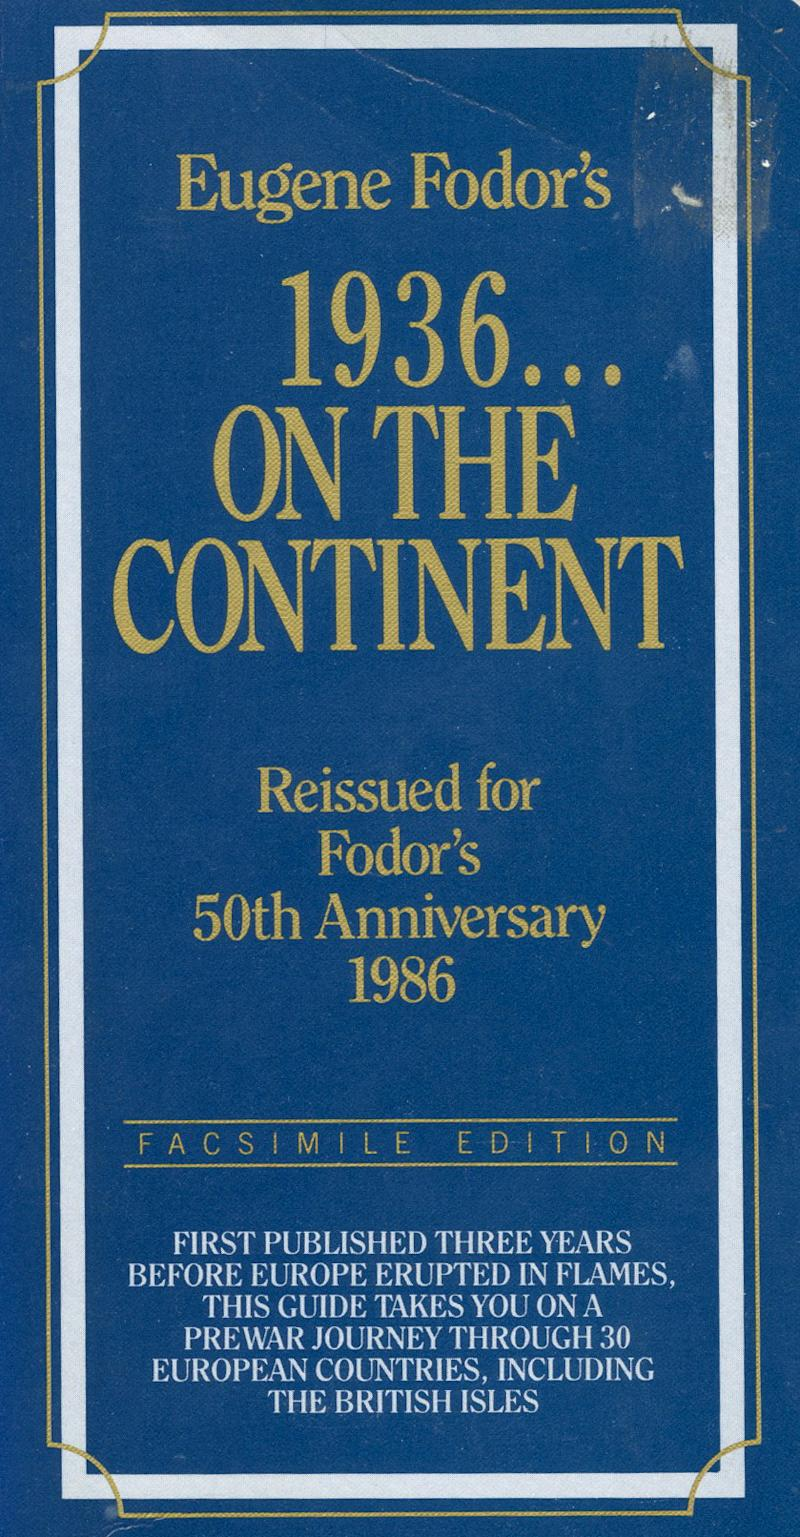 """This book cover courtesy of Fodor's shows the cover of Eugene Fodor's """"1936 On The Continent: Reissued for Fodor's 50th Anniversary 1986."""" This year, Random House is marking the 75th anniversary of Eugene Fodor's first travel guide with an e-book version.   (AP Photo/Fodor's) NO SALES"""